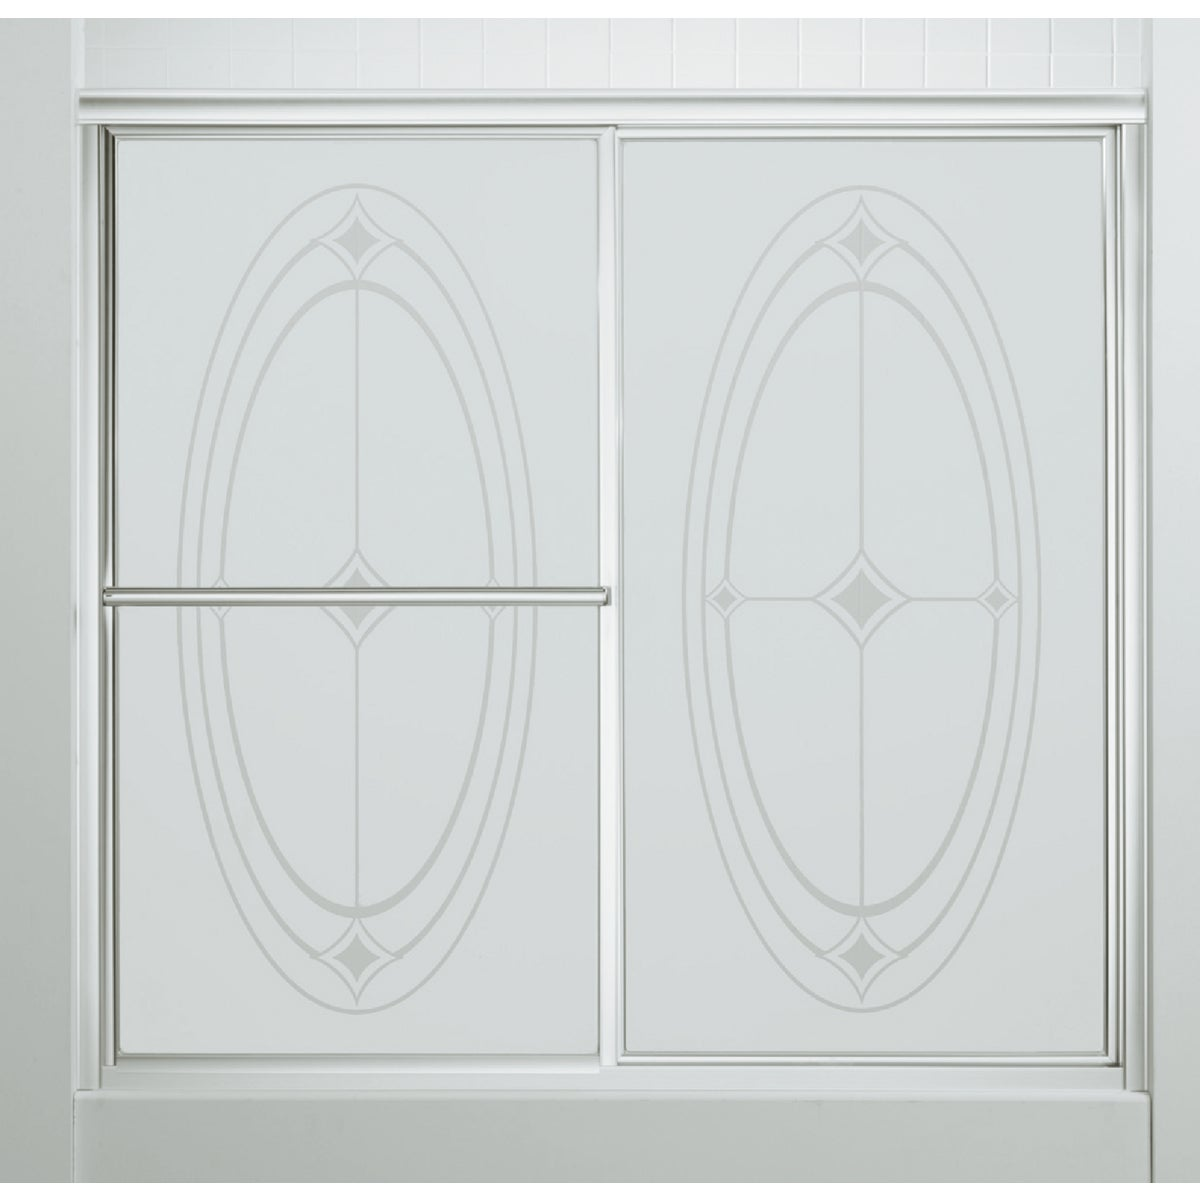 SILVER BY-PASS TUB DOOR - 5907-59S by Sterling Doors